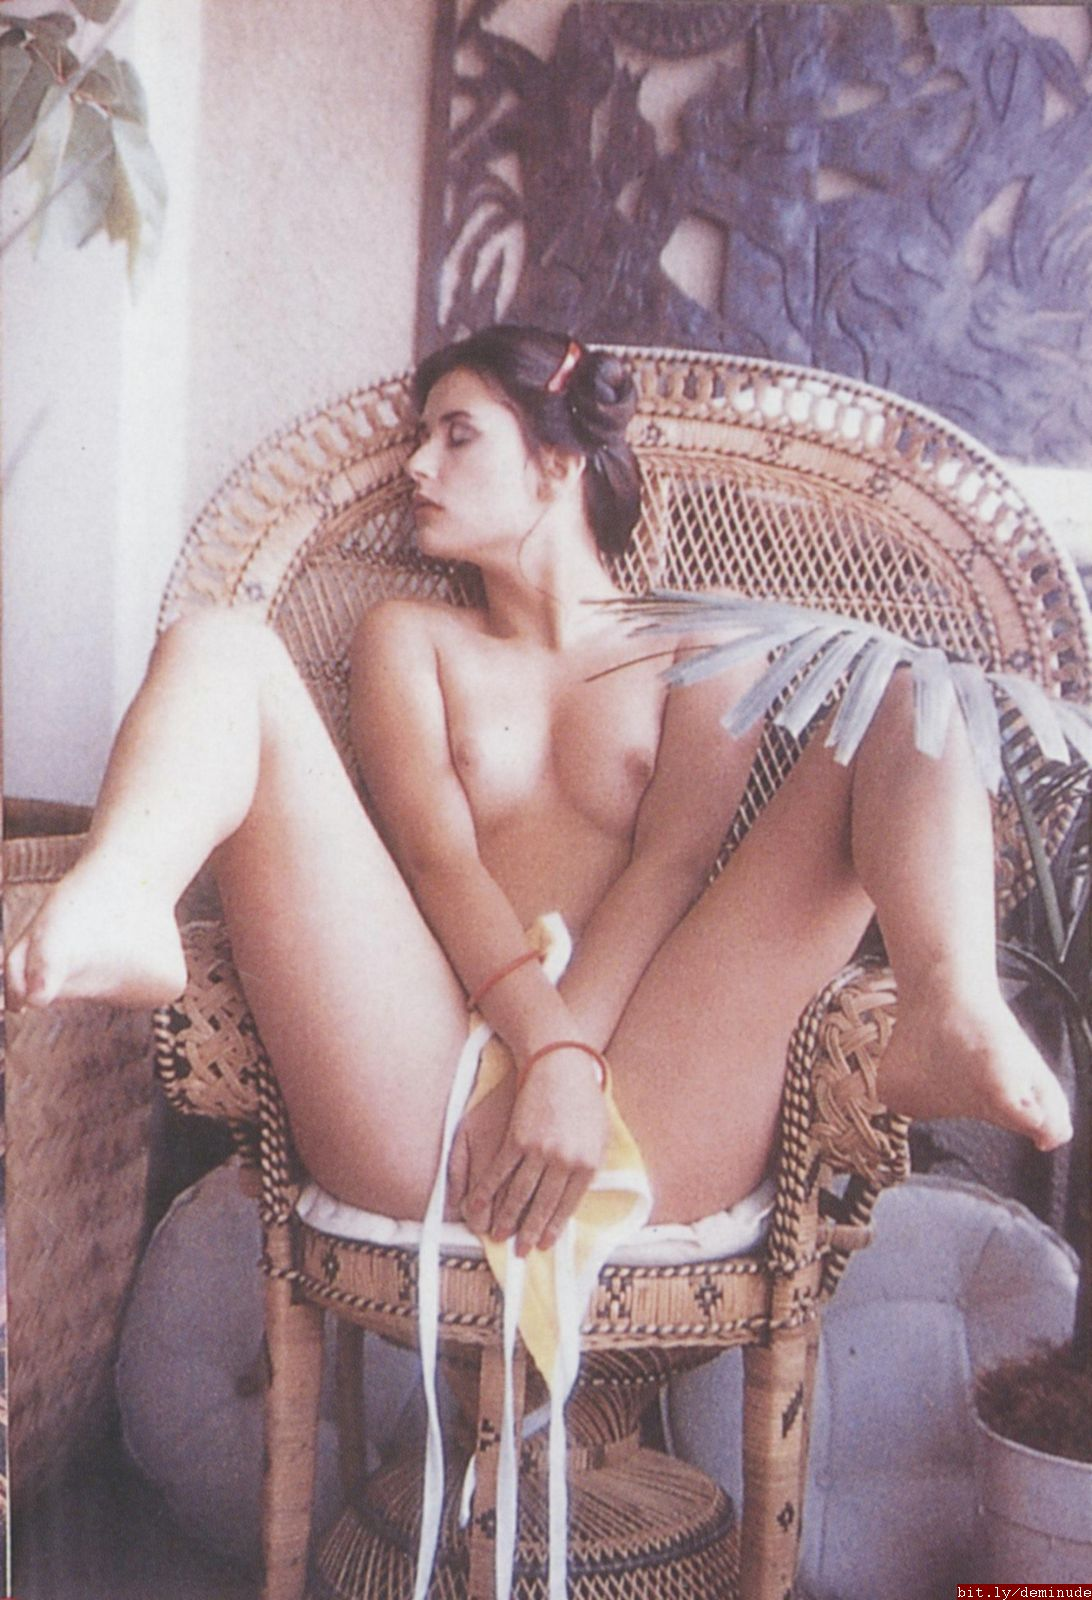 demi moore nudes are everywhere you look 79 pics